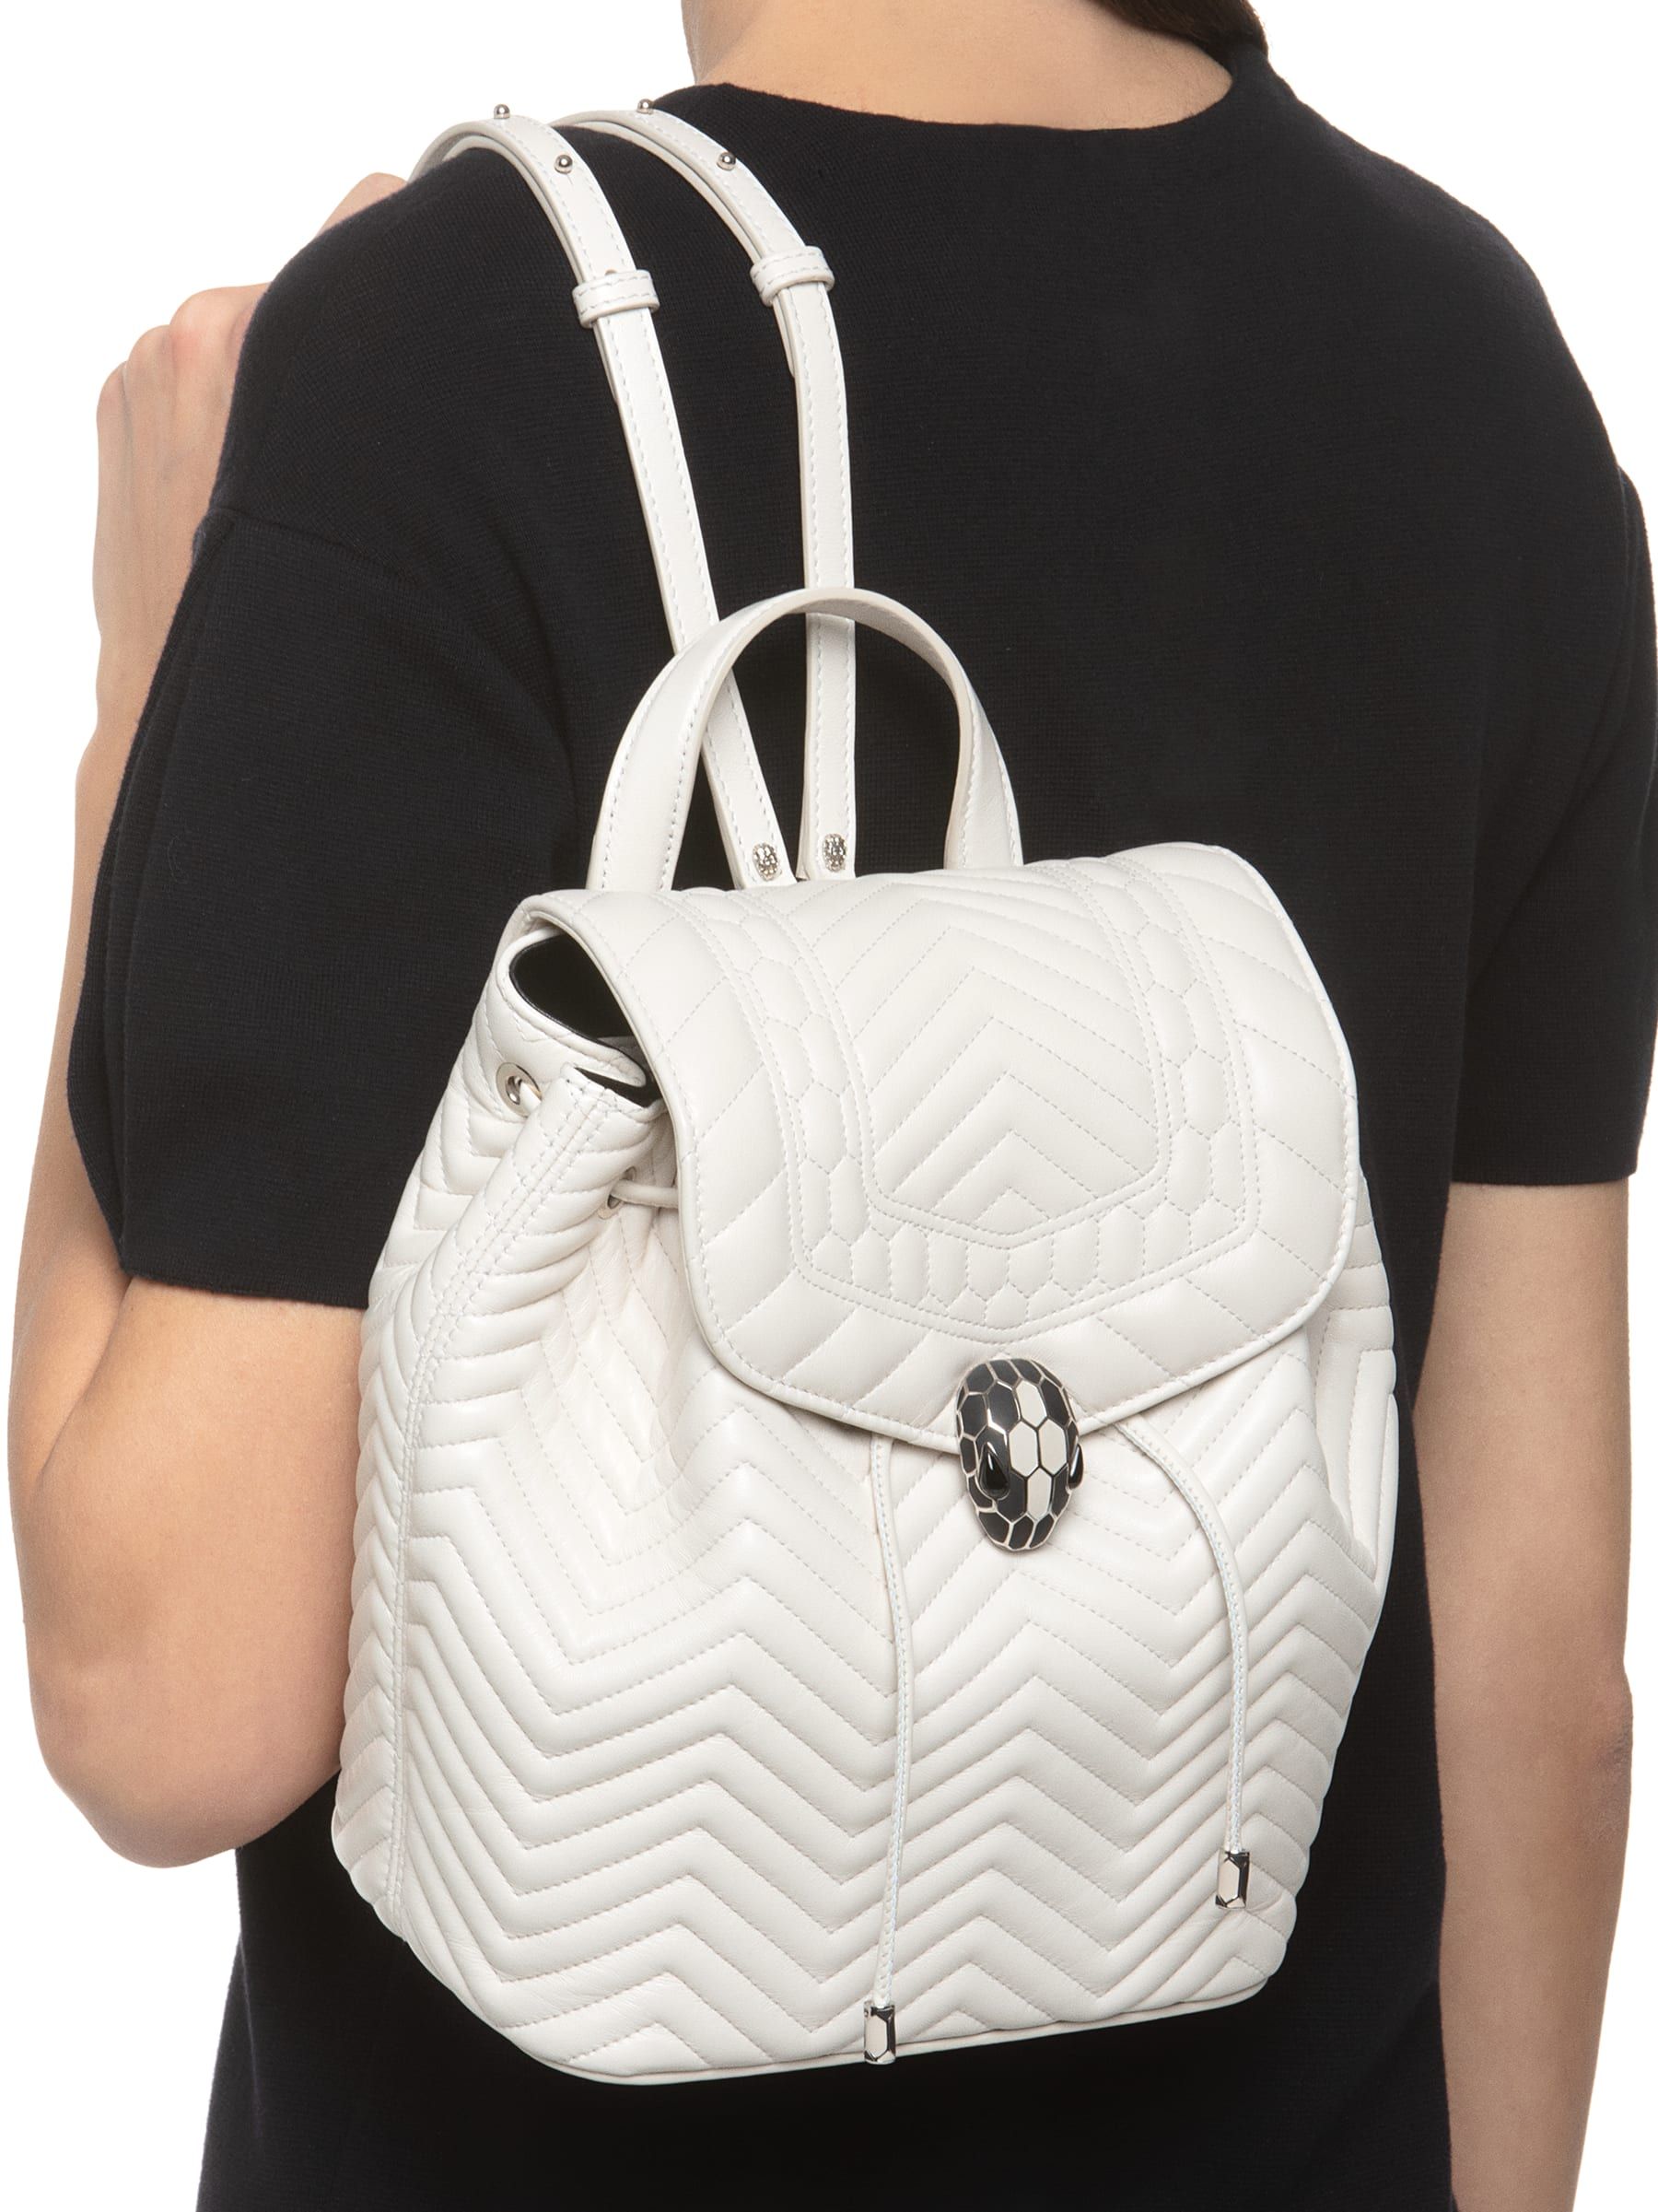 Backpack Serpenti Forever in white agate quilted nappa leather and black internal lining. Hardware in light gold plated brass and snakehead closure in matte black and white agate enamel, with eyes in black onyx. 286979 image 2